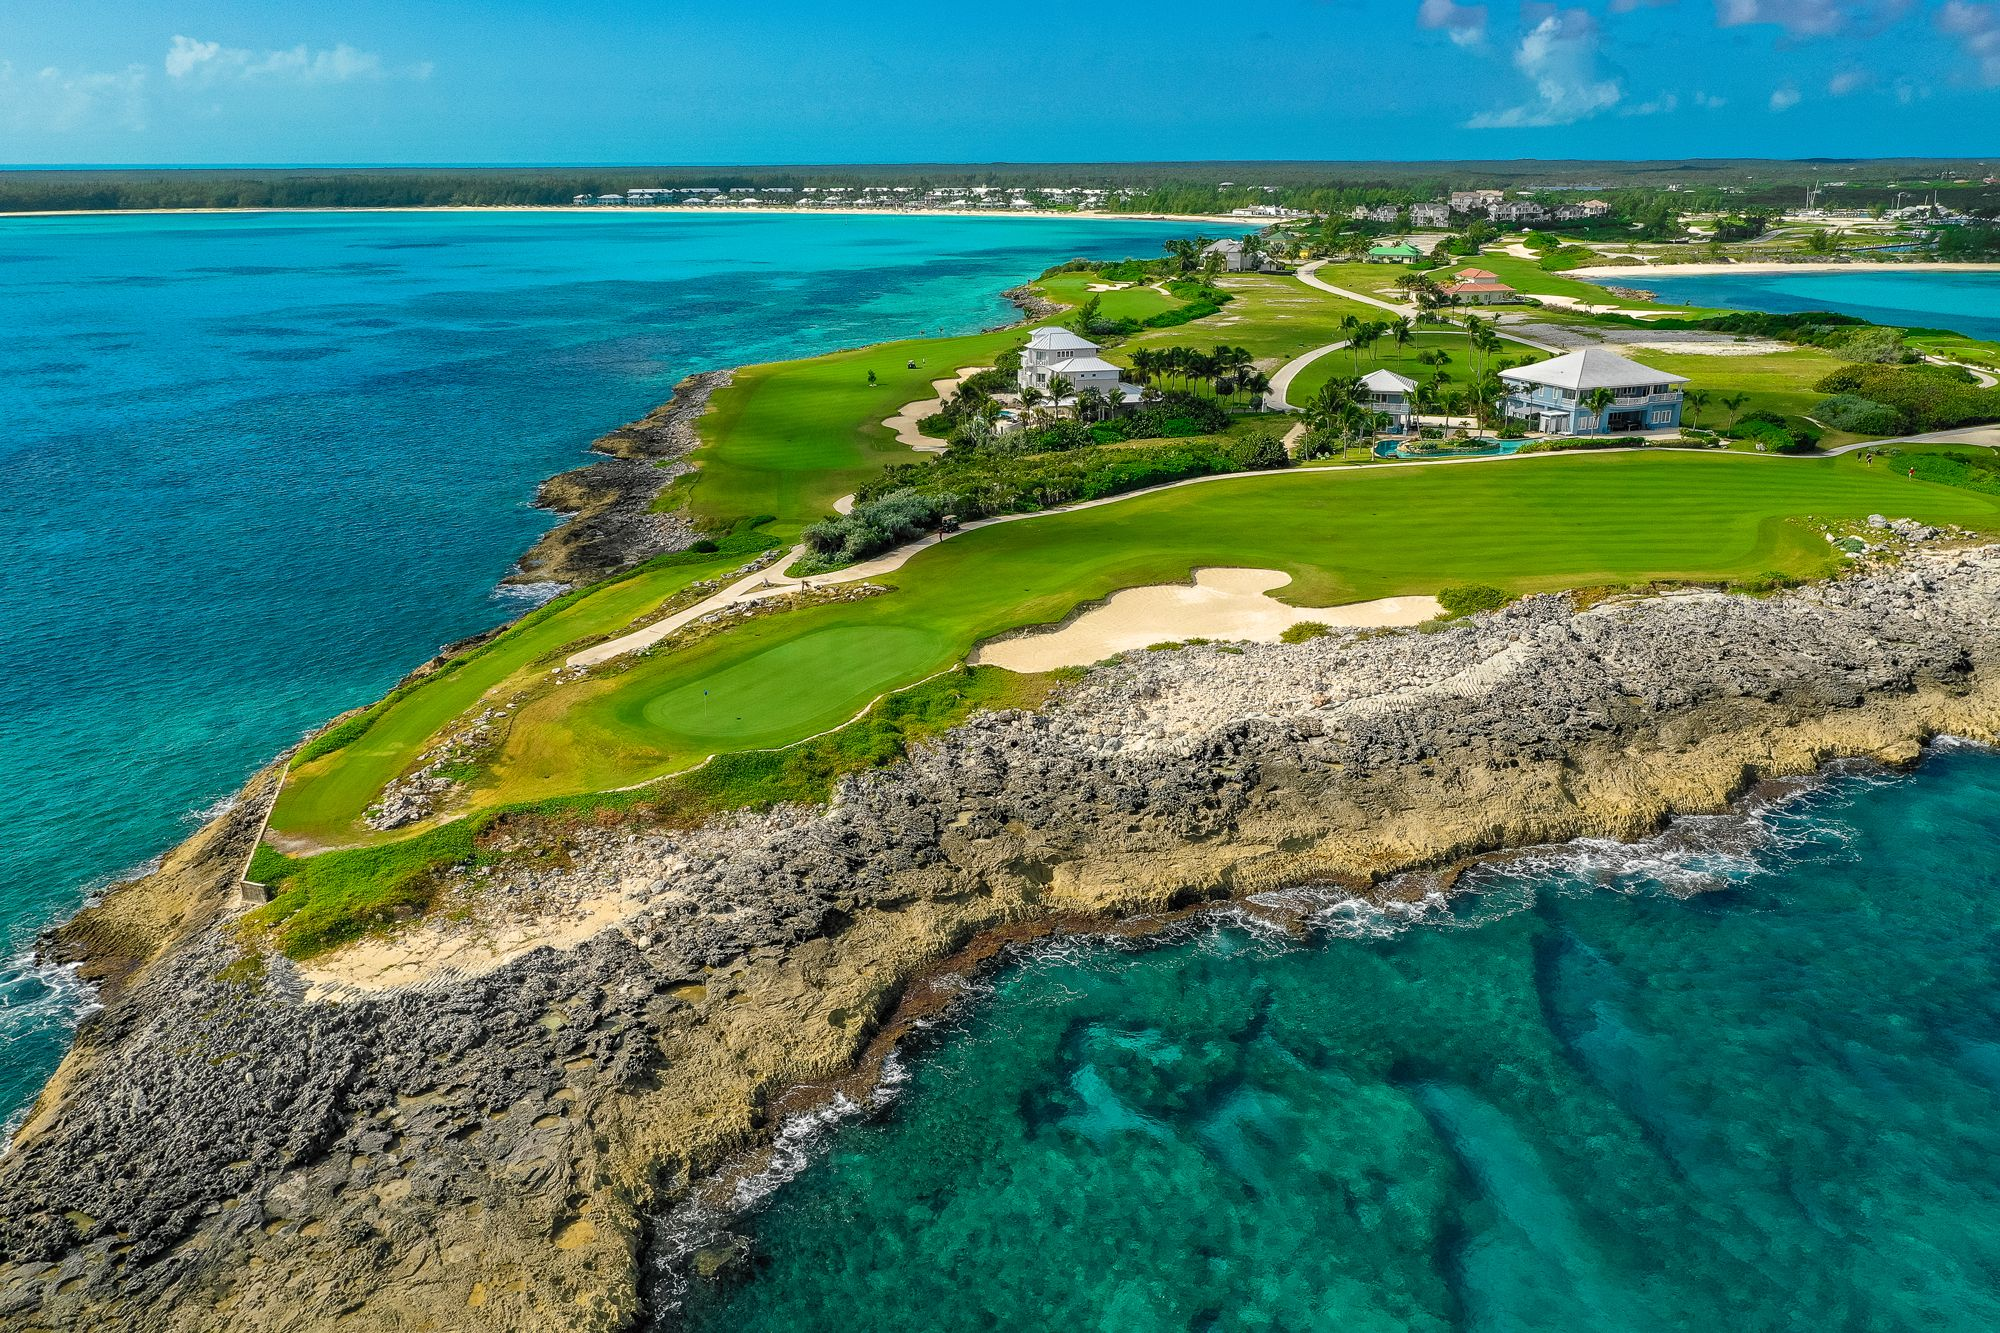 Sandals Emerald Bay Bahamas Golf Course